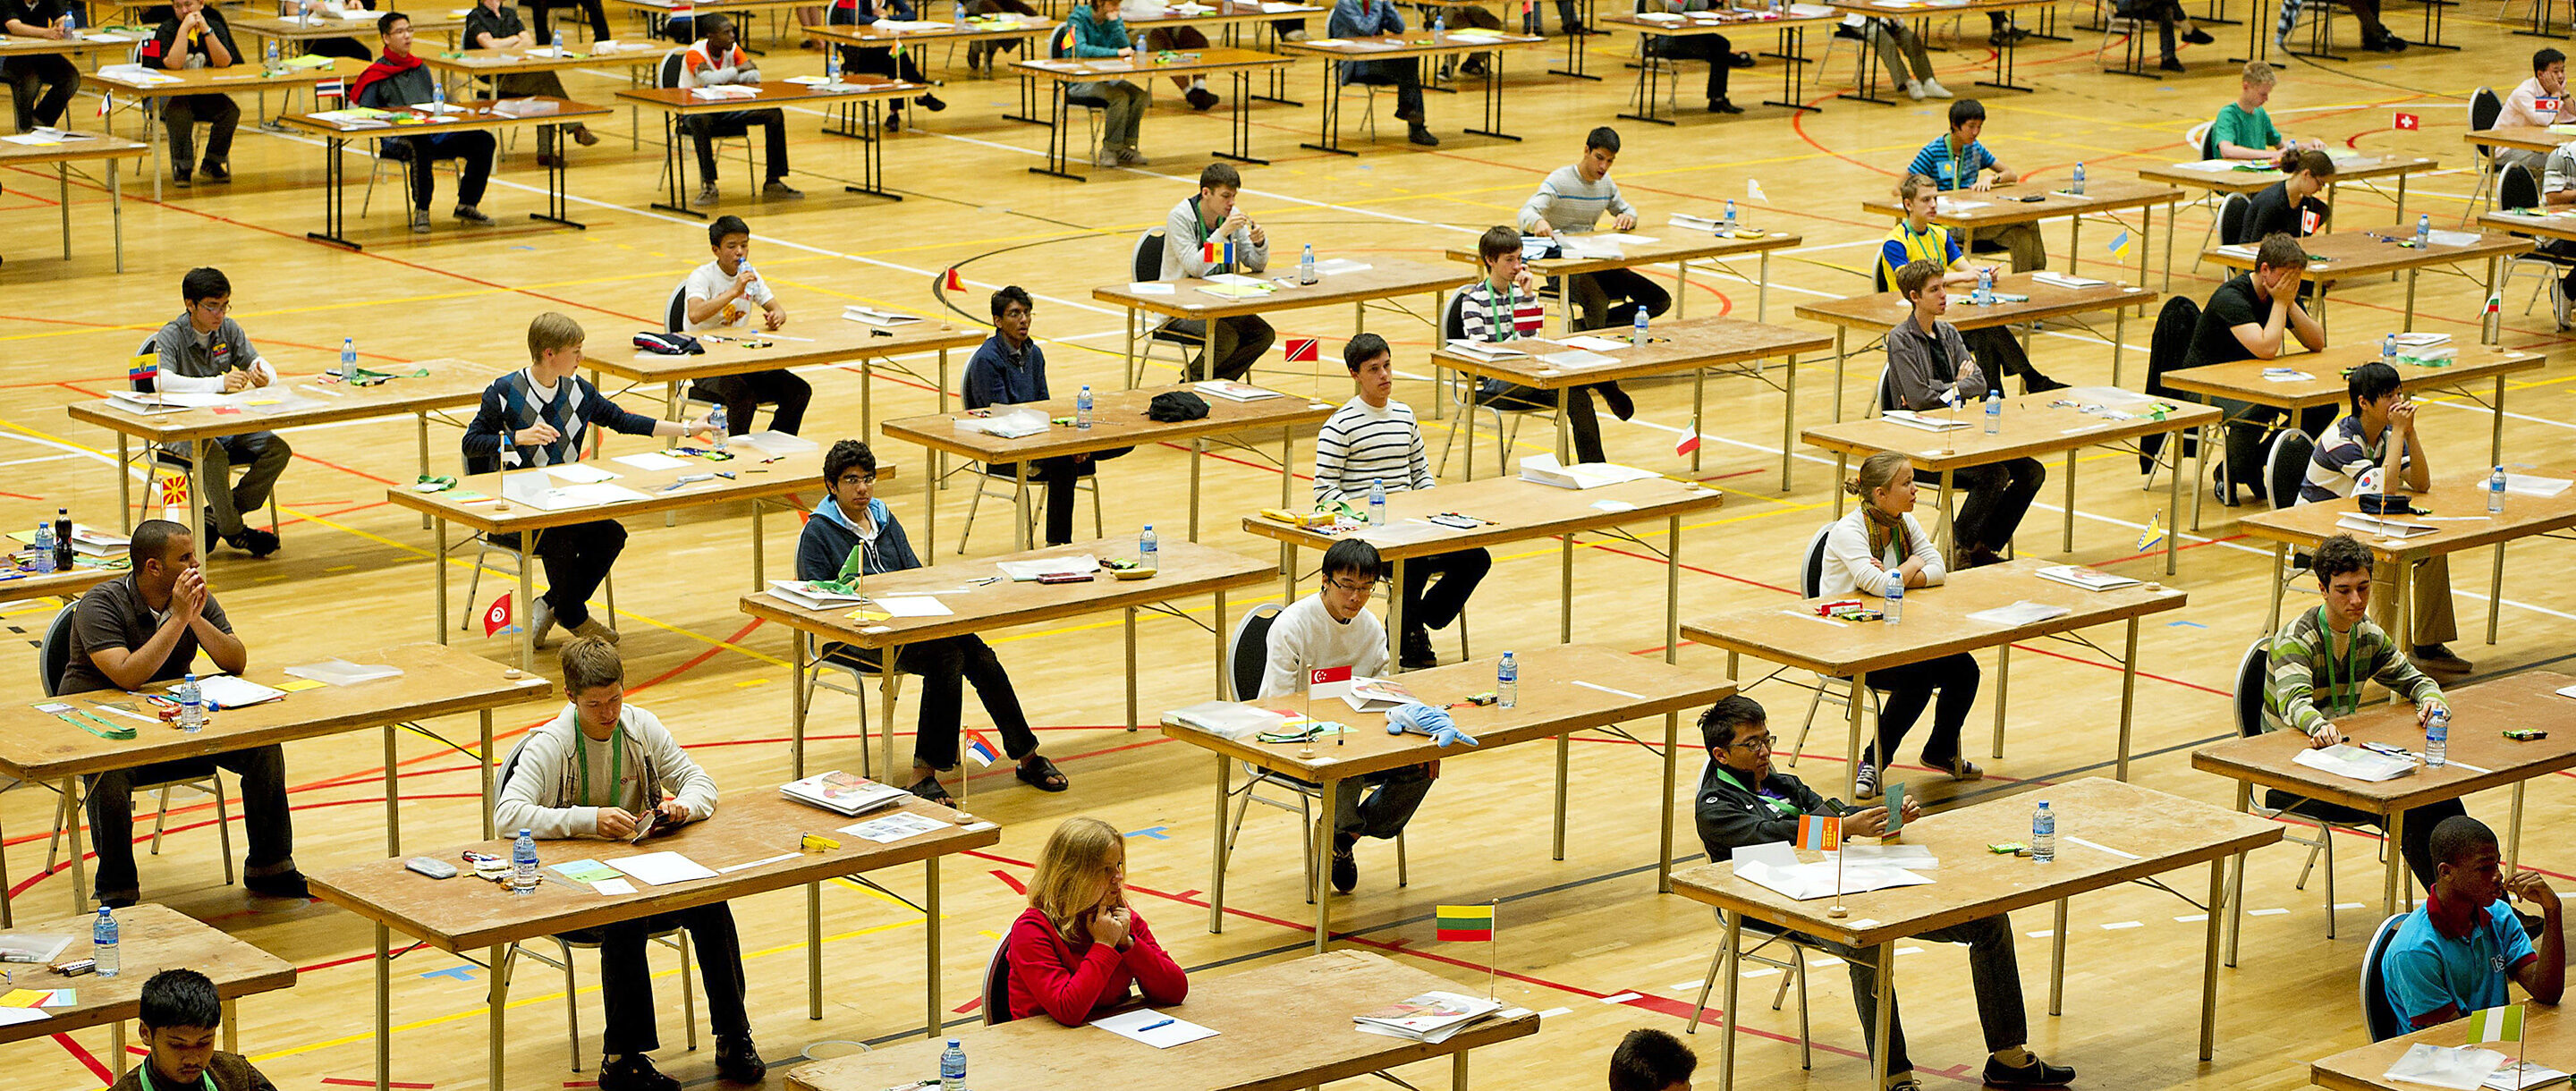 Photo of students sitting at desks competing in the International Mathematical Olympiad